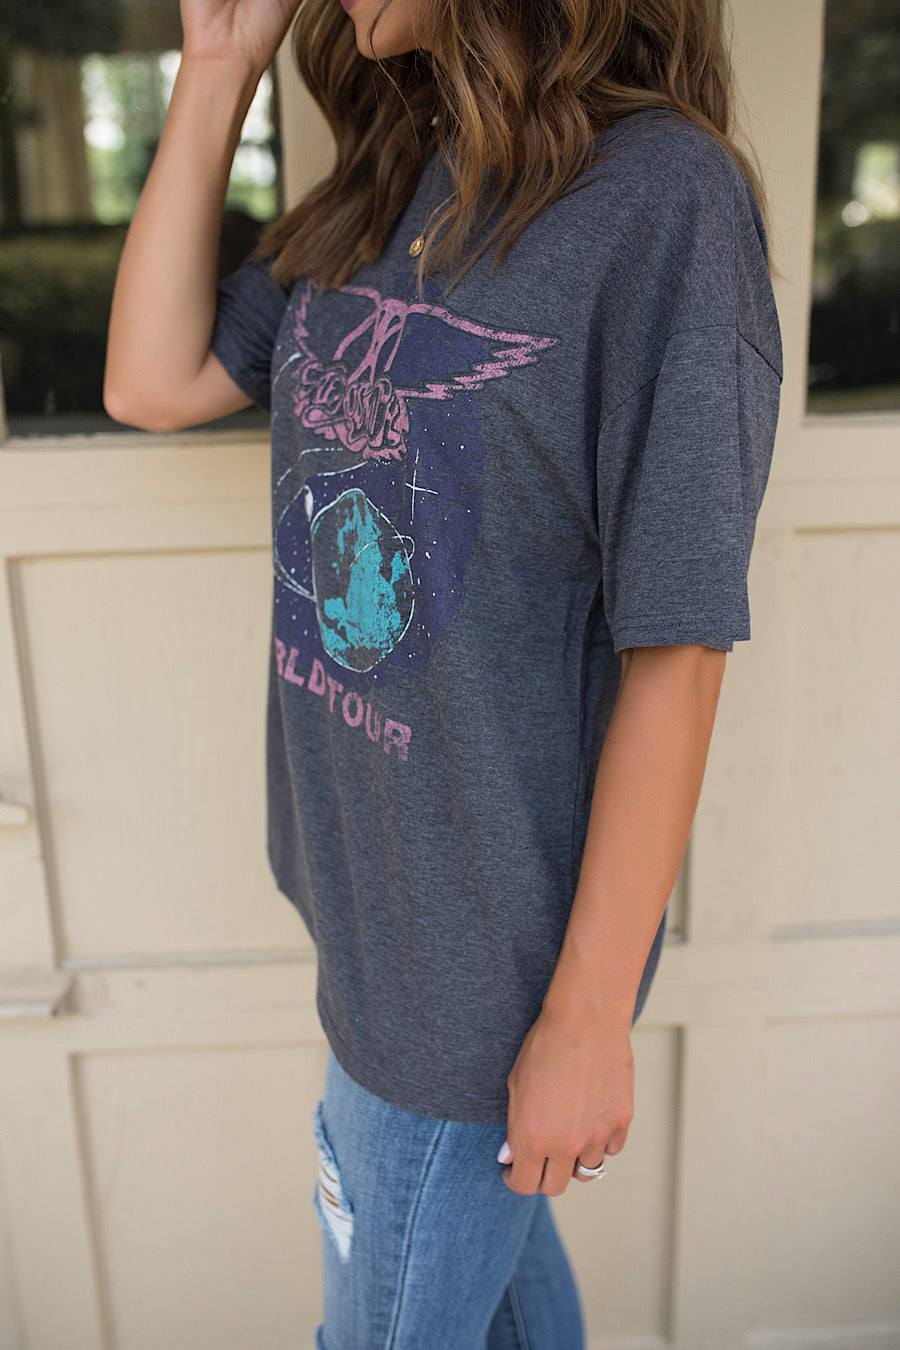 Aerosmith Boyfriend T-shirt